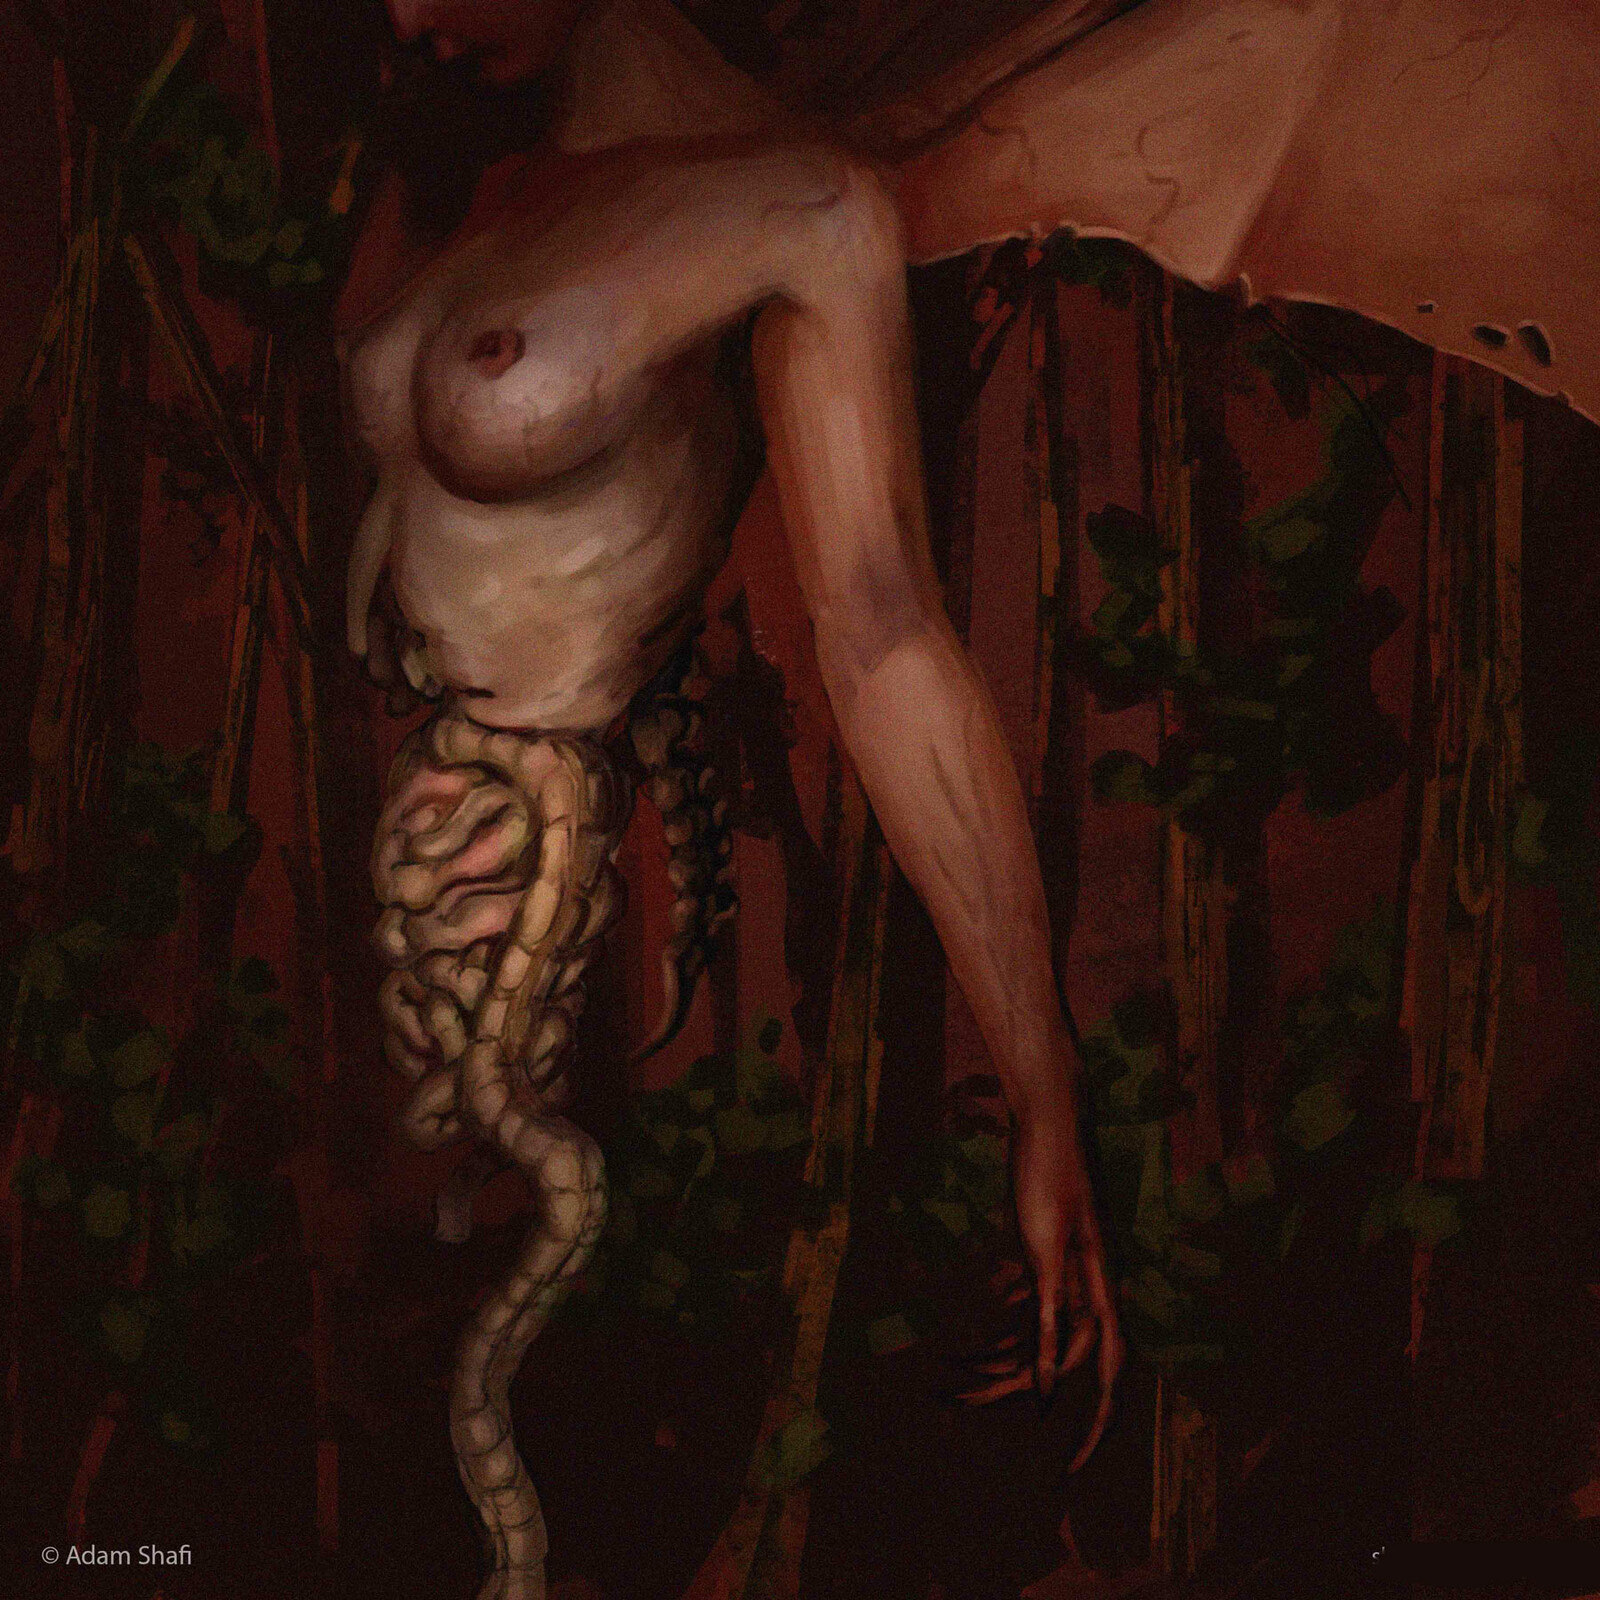 The Penanggalan. As night comes, the top half of a cursed girl sprouts wings and splits from her waist. Entrails hanging loose, she stalks the forest awaiting prey in the form of lost wanderers.